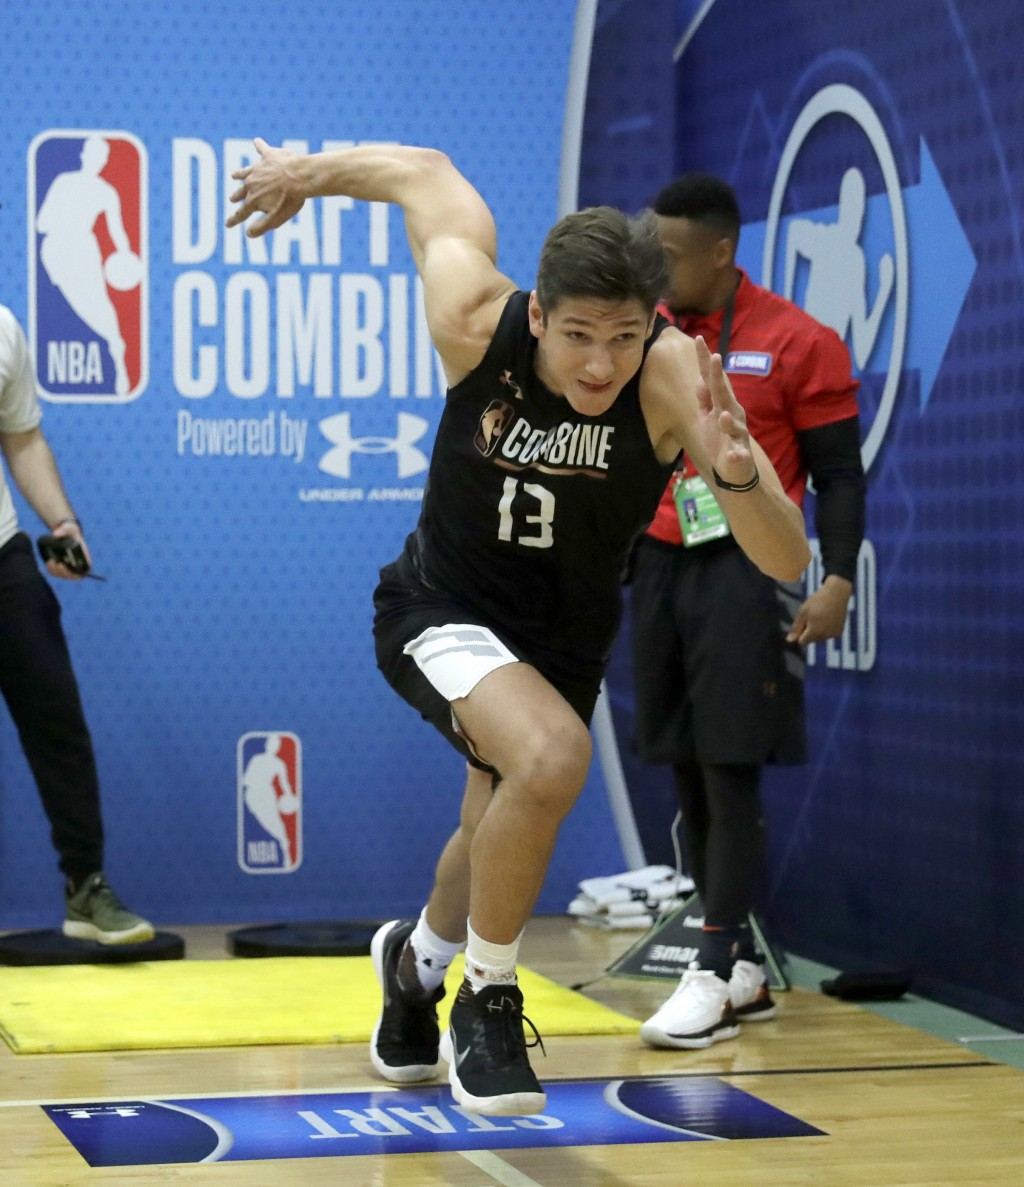 Grayson Allen, from Duke, participates in the NBA draft basketball combine Thursday, May 17, 2018, in Chicago. (AP Photo/Charles Rex Arbogast)